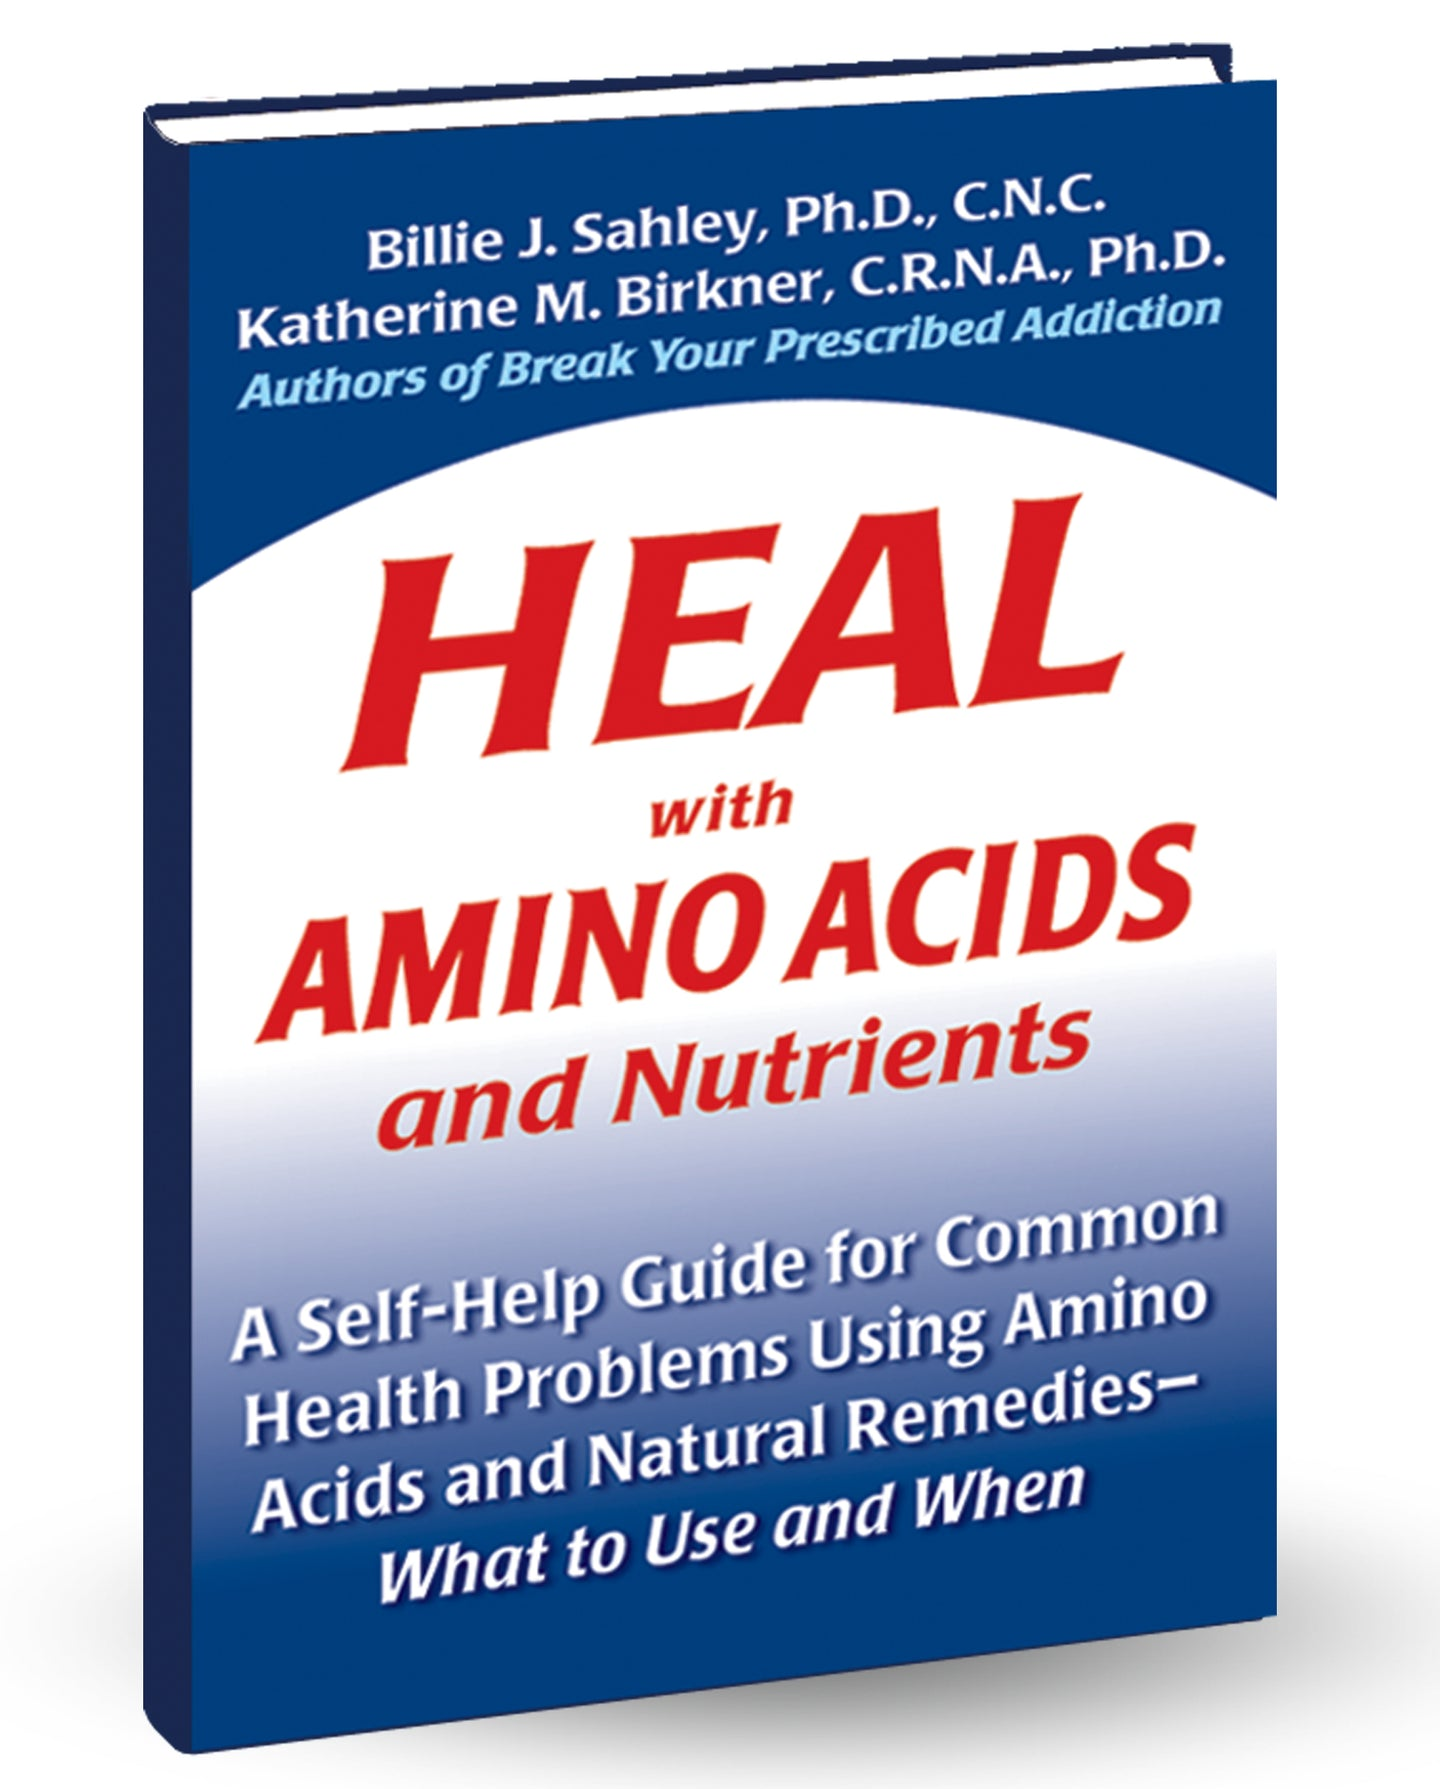 Heal with Amino Acids and Nutrients by Billie J. Sahley, Ph.D., C.N.C. and Katherine Birkner, C.R.N.A., Ph.D.